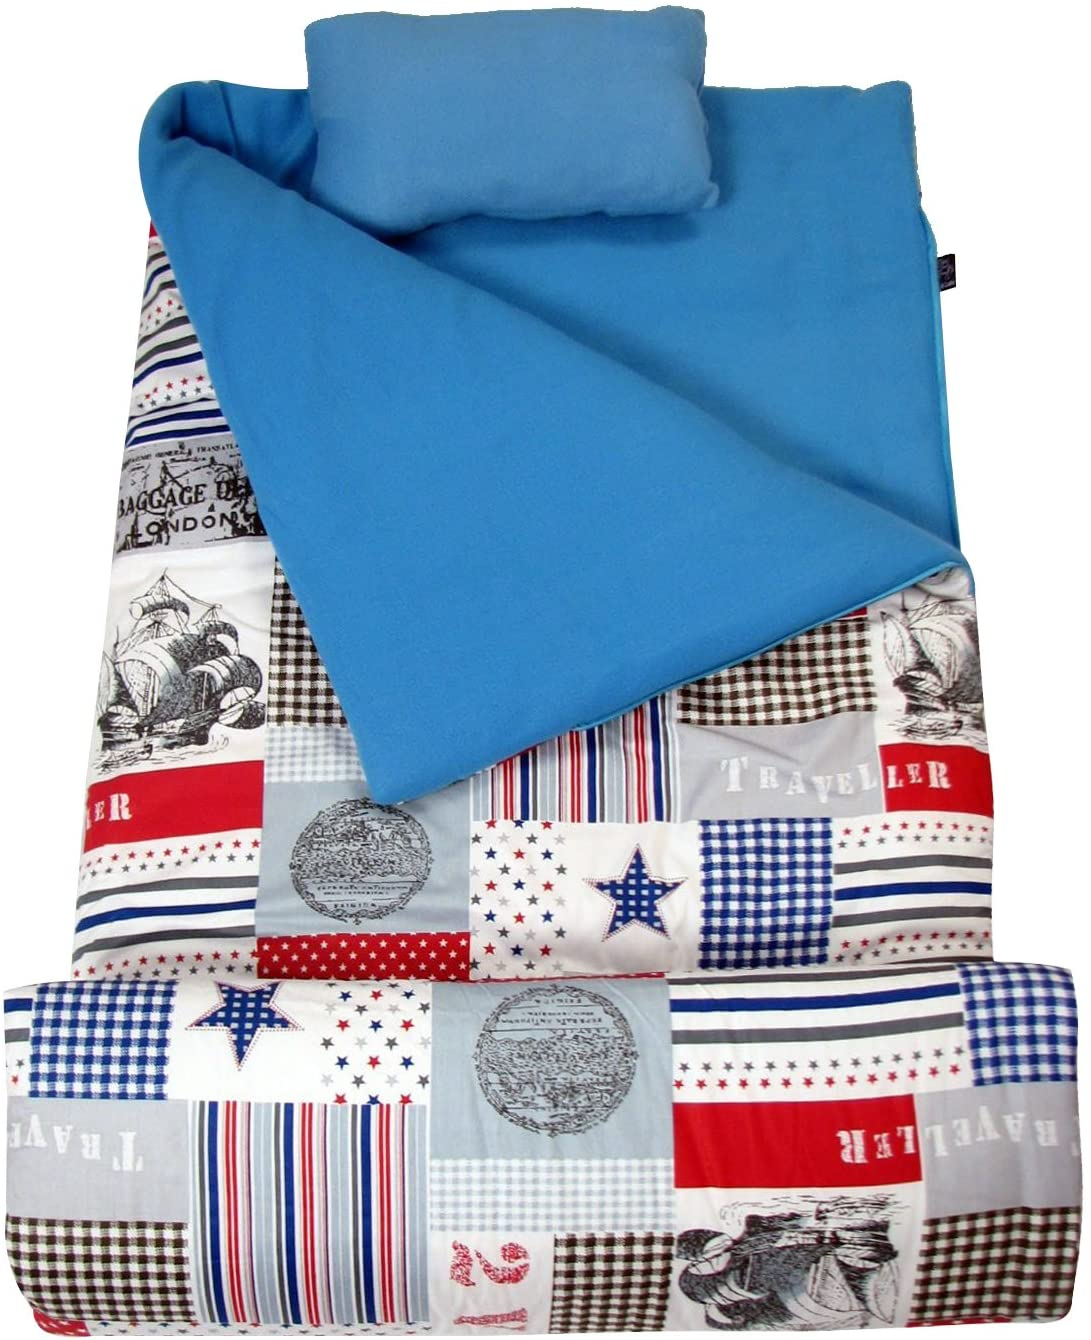 SoHo Kids Sleeping Bag 50 Degree, Stars n Stripes